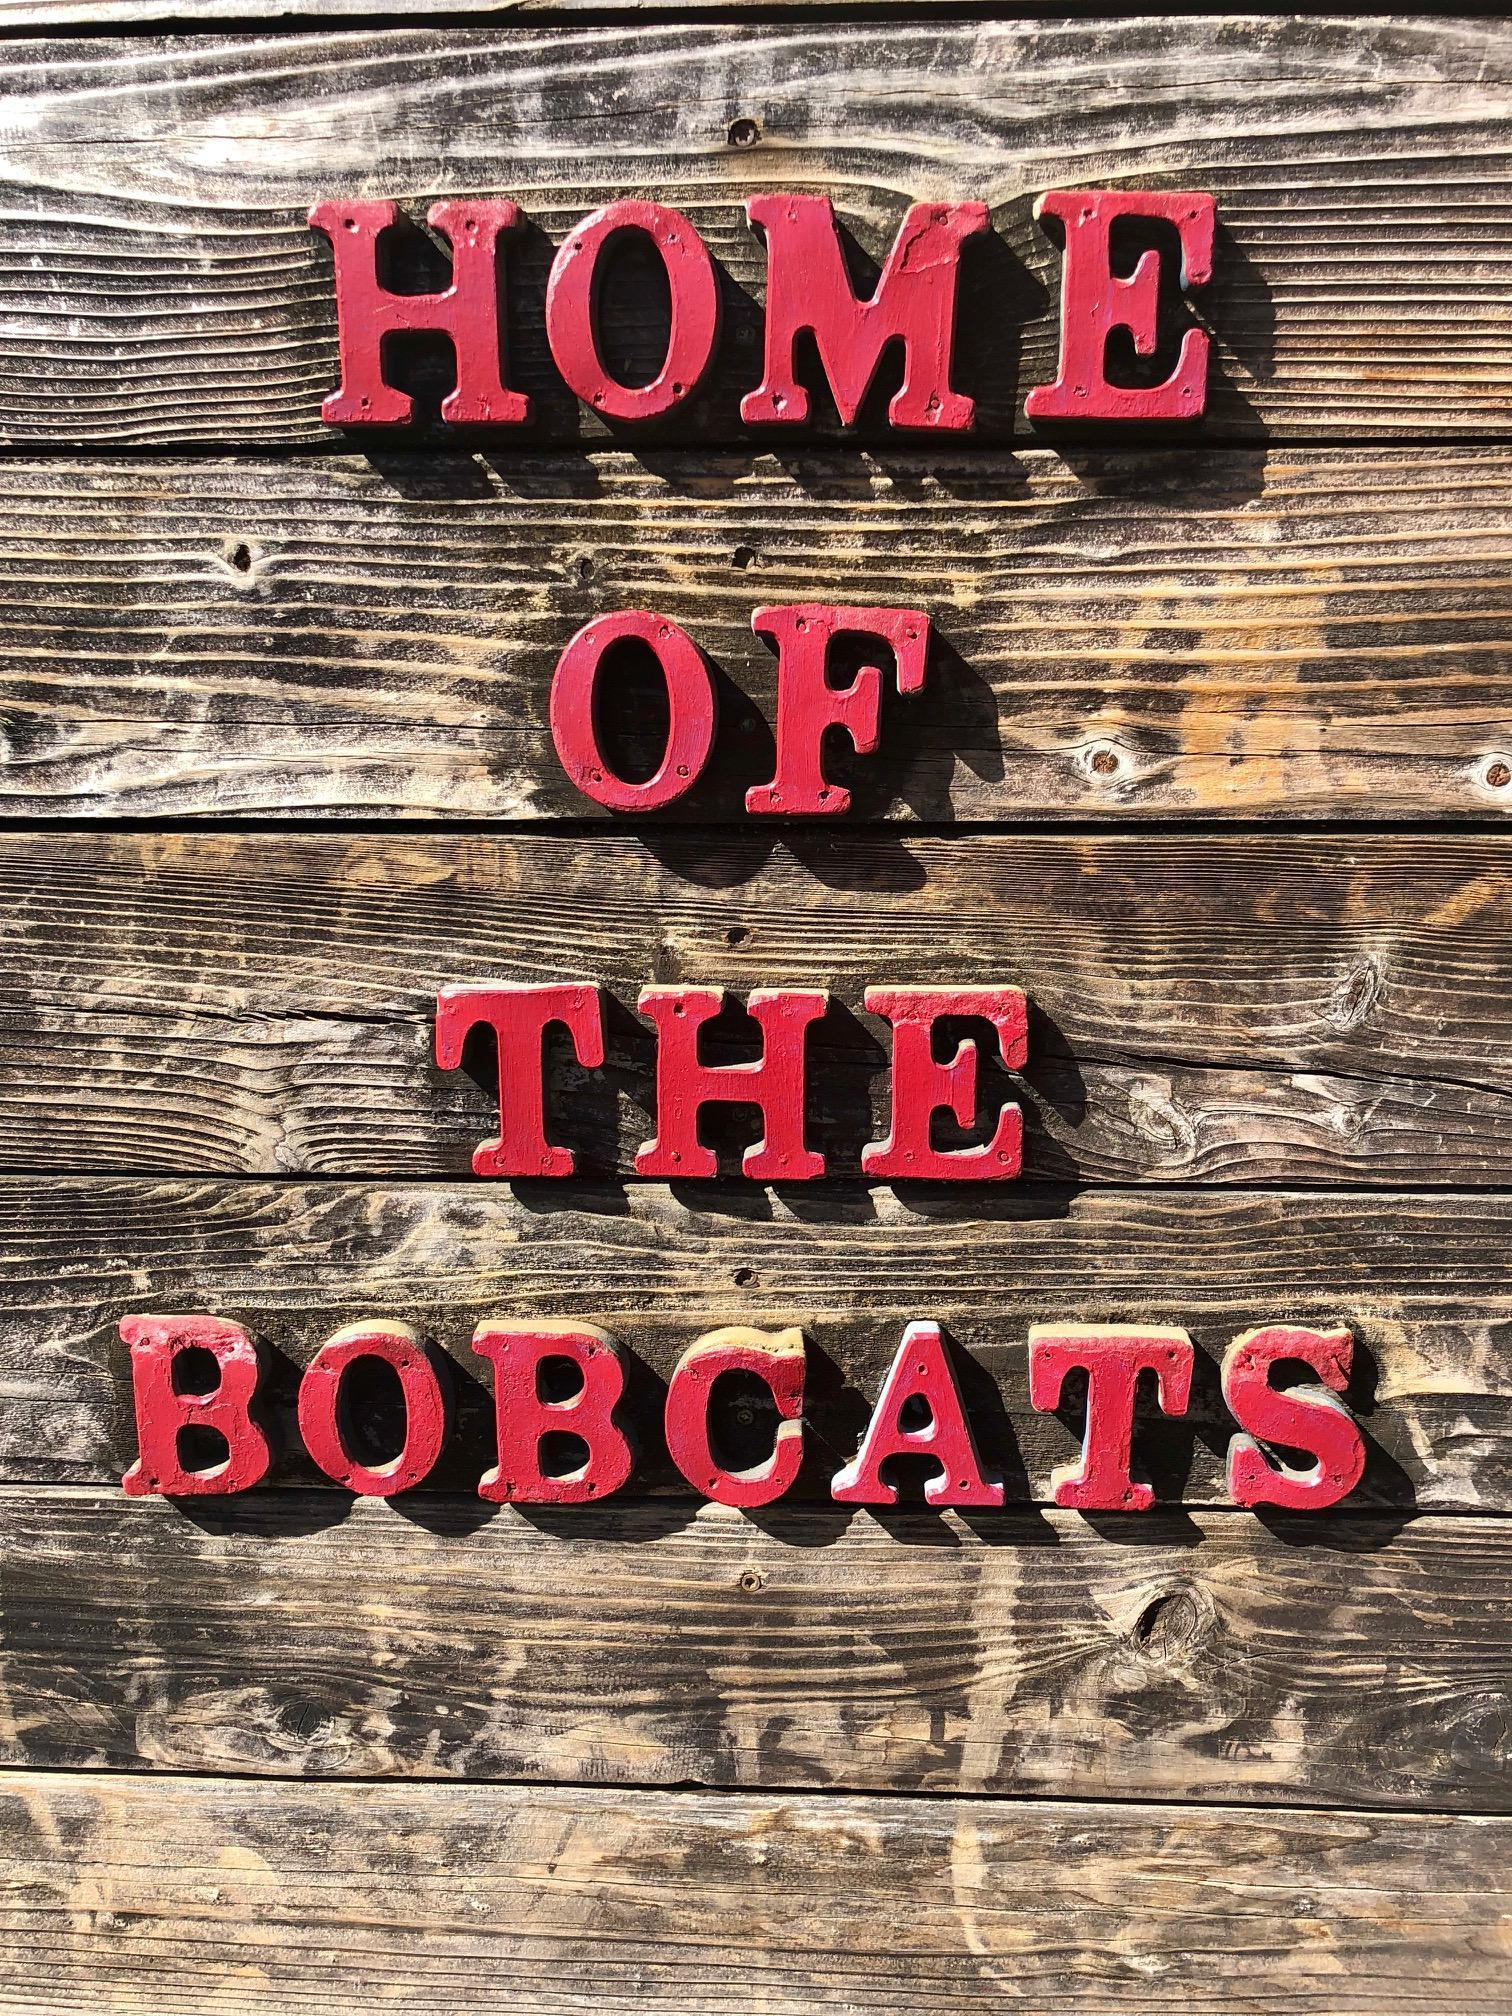 Home of the Bobcats